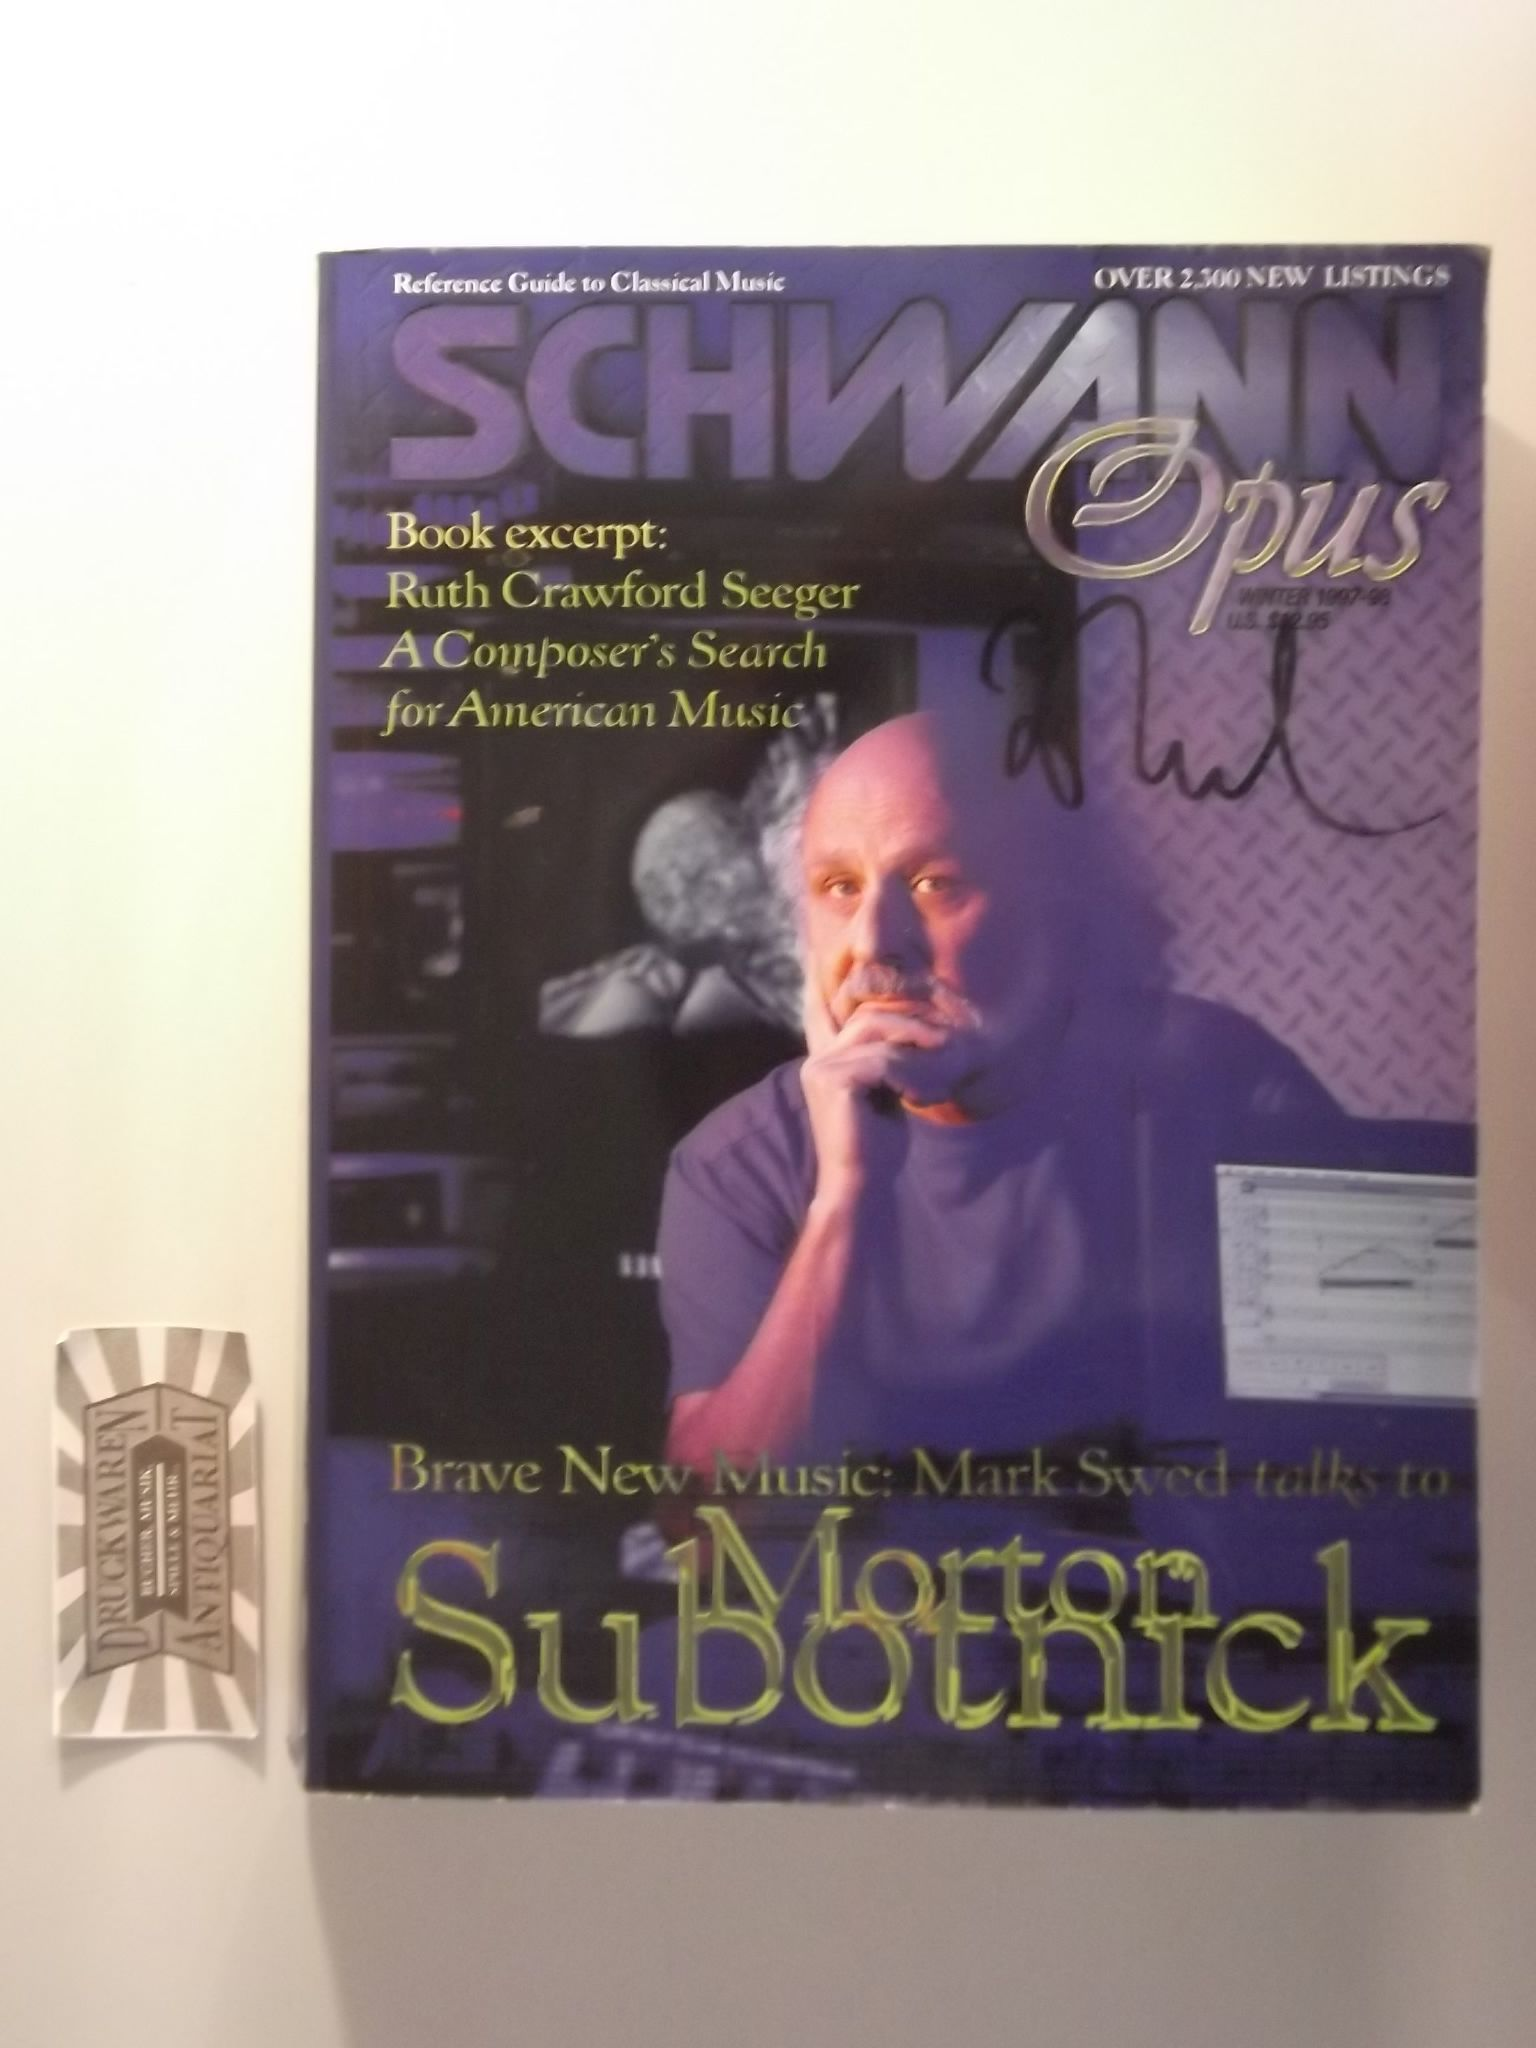 Schwann Opus : Volume 9 Number 1 - Winter 1997/98.